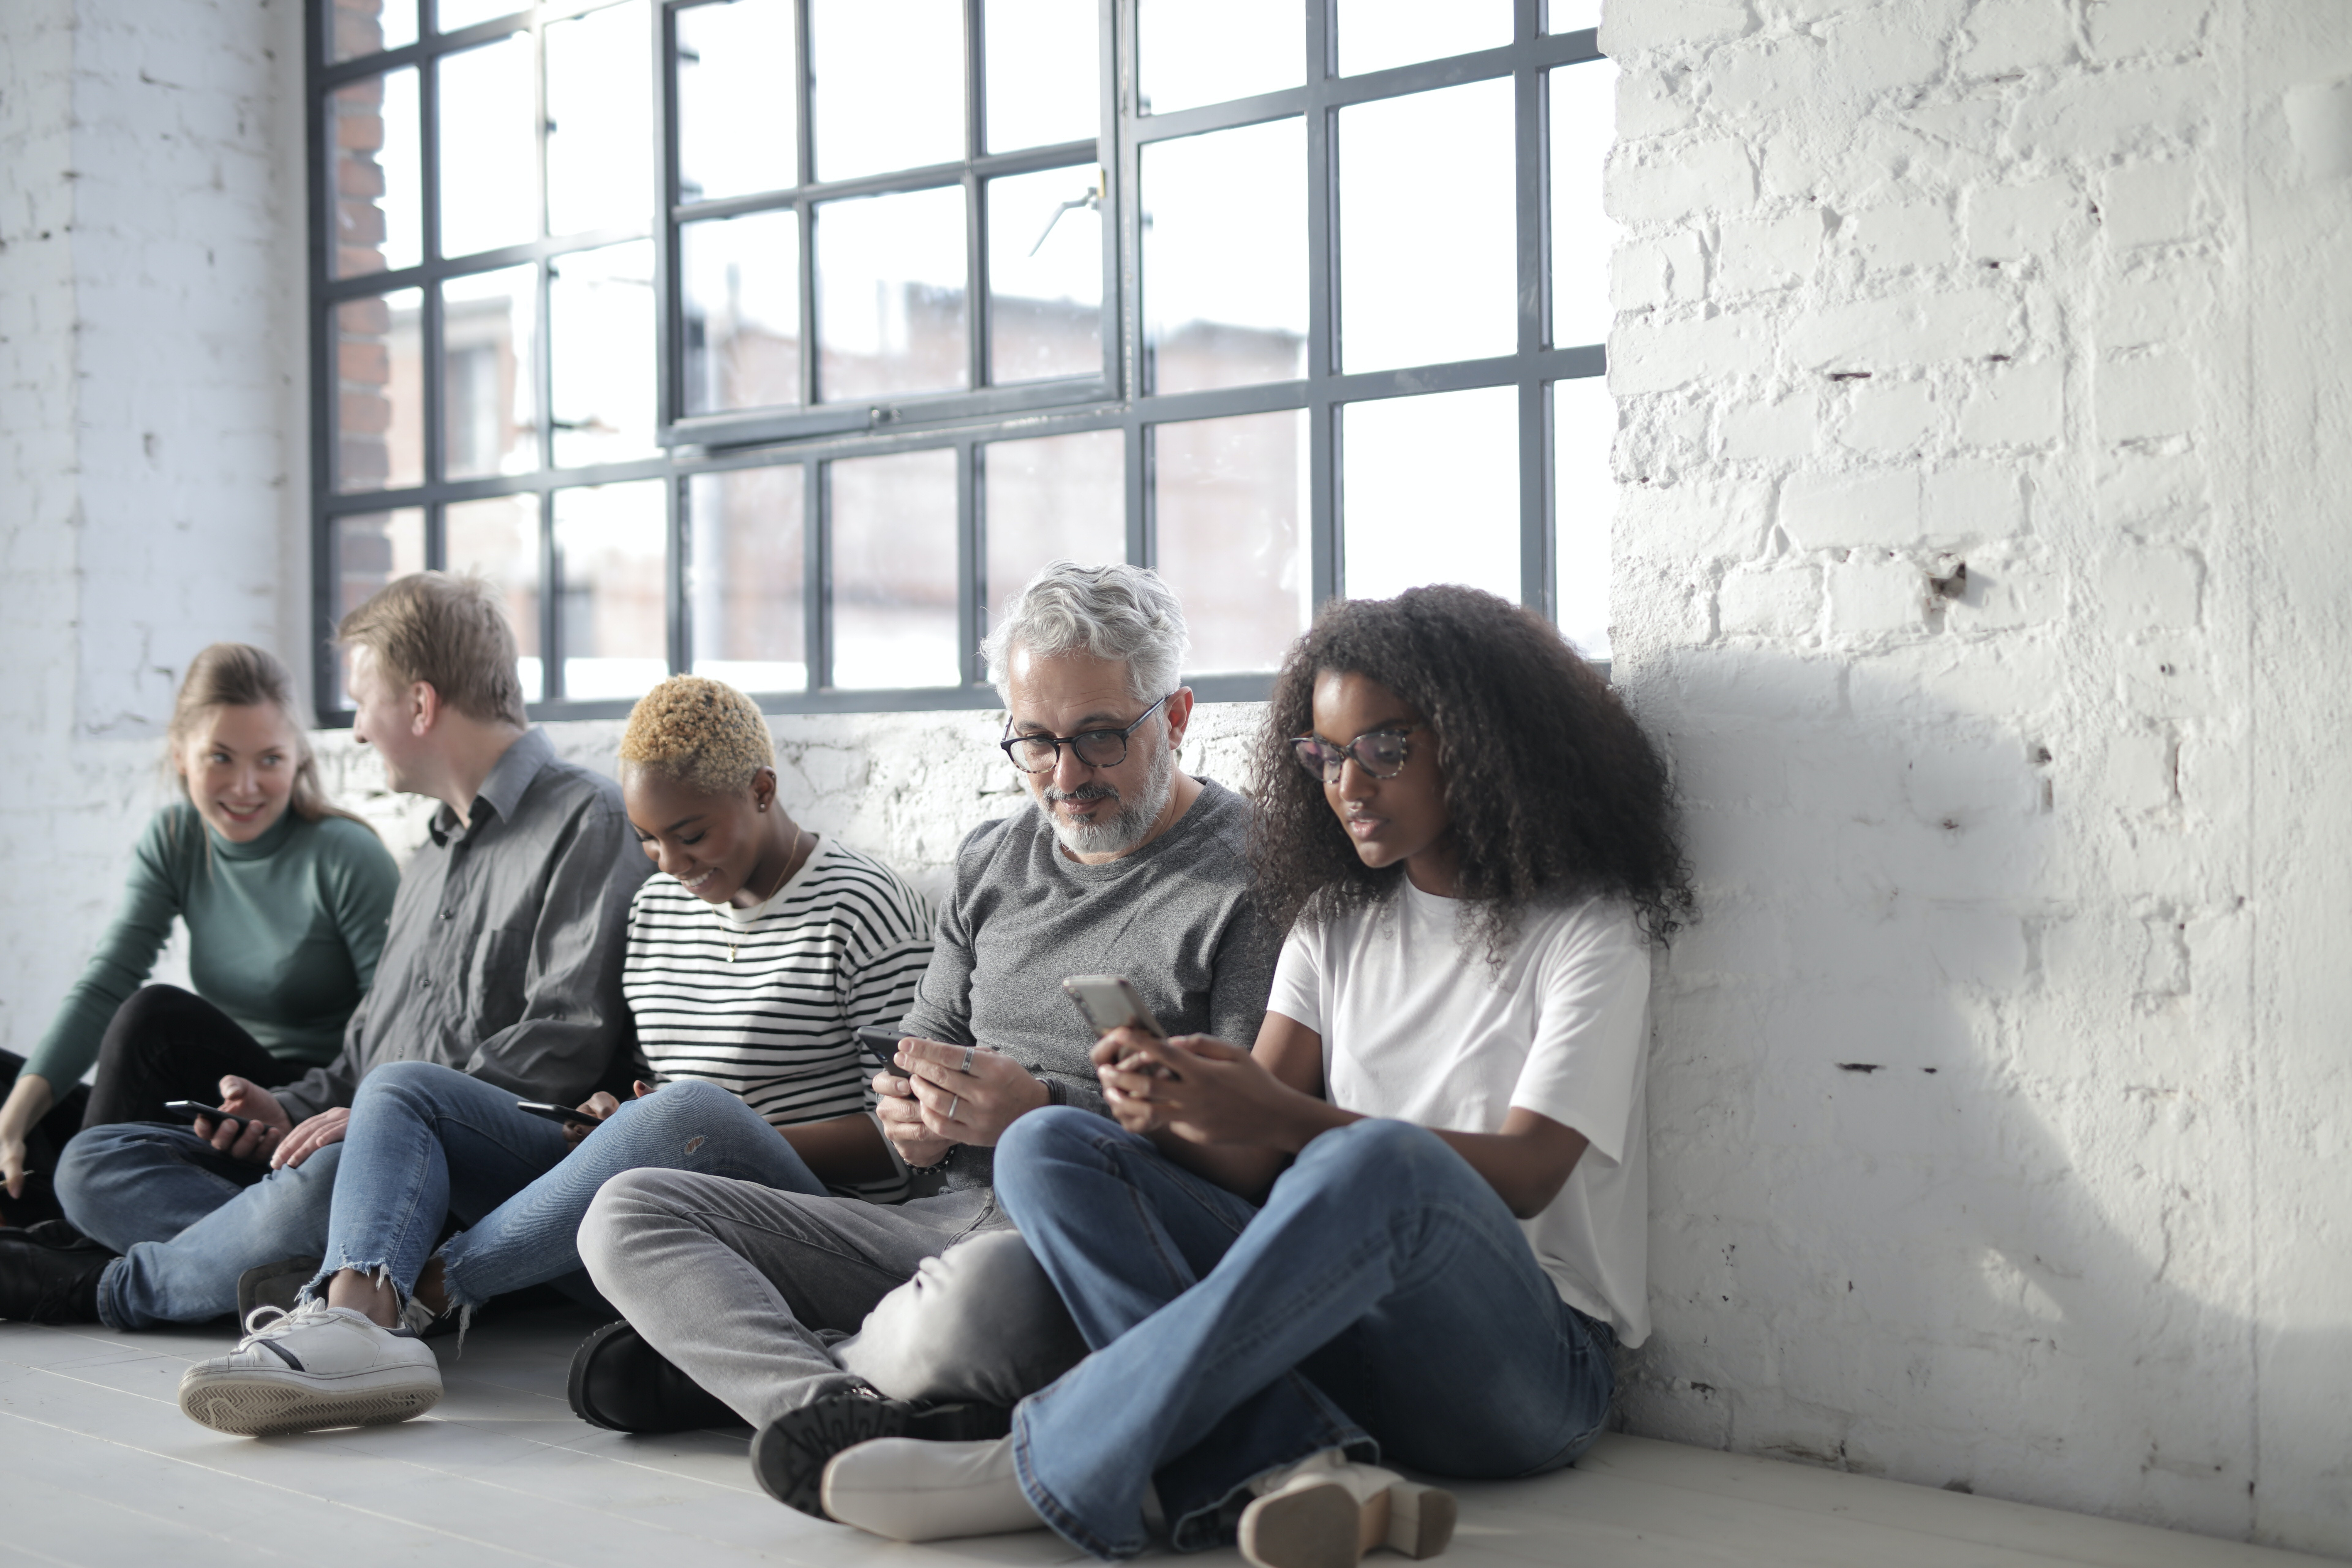 A group of men and women sitting in a hallway, looking at their phones.